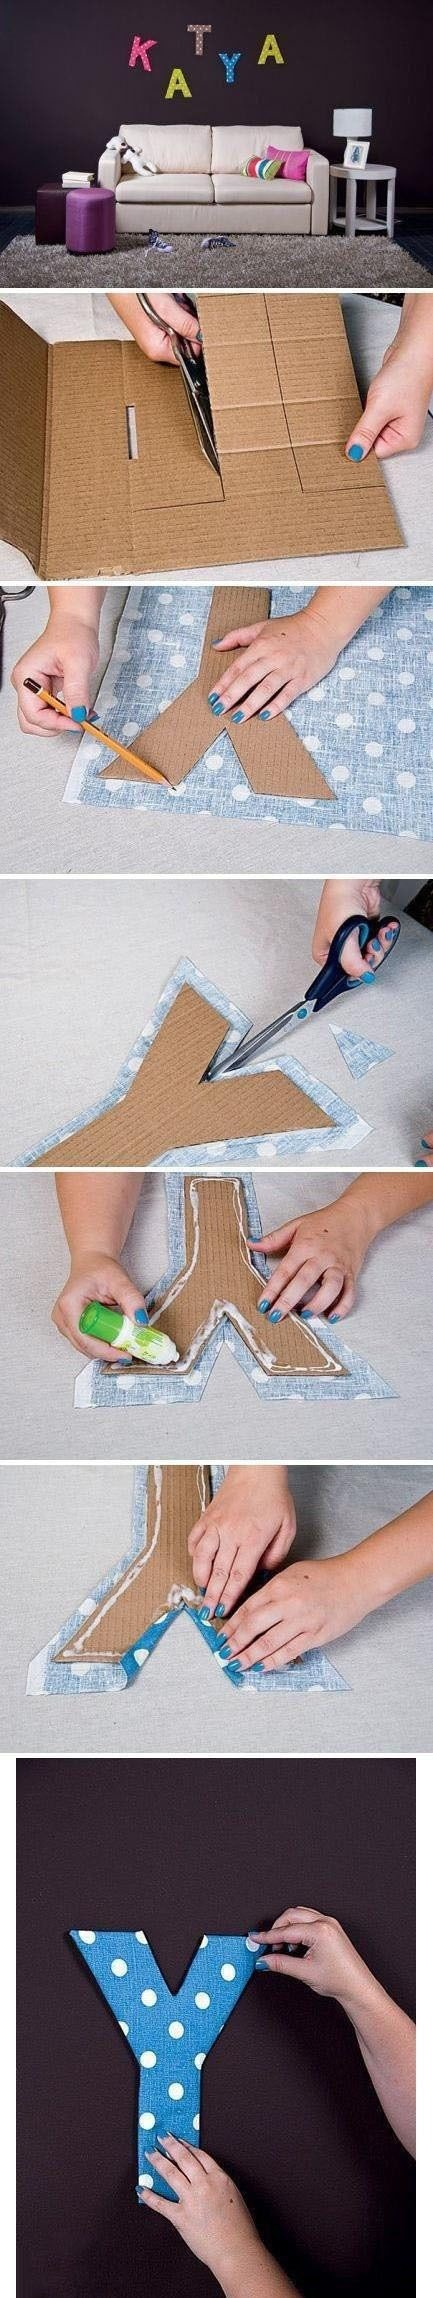 how to cover cardboard letters with fabric - 206 likes